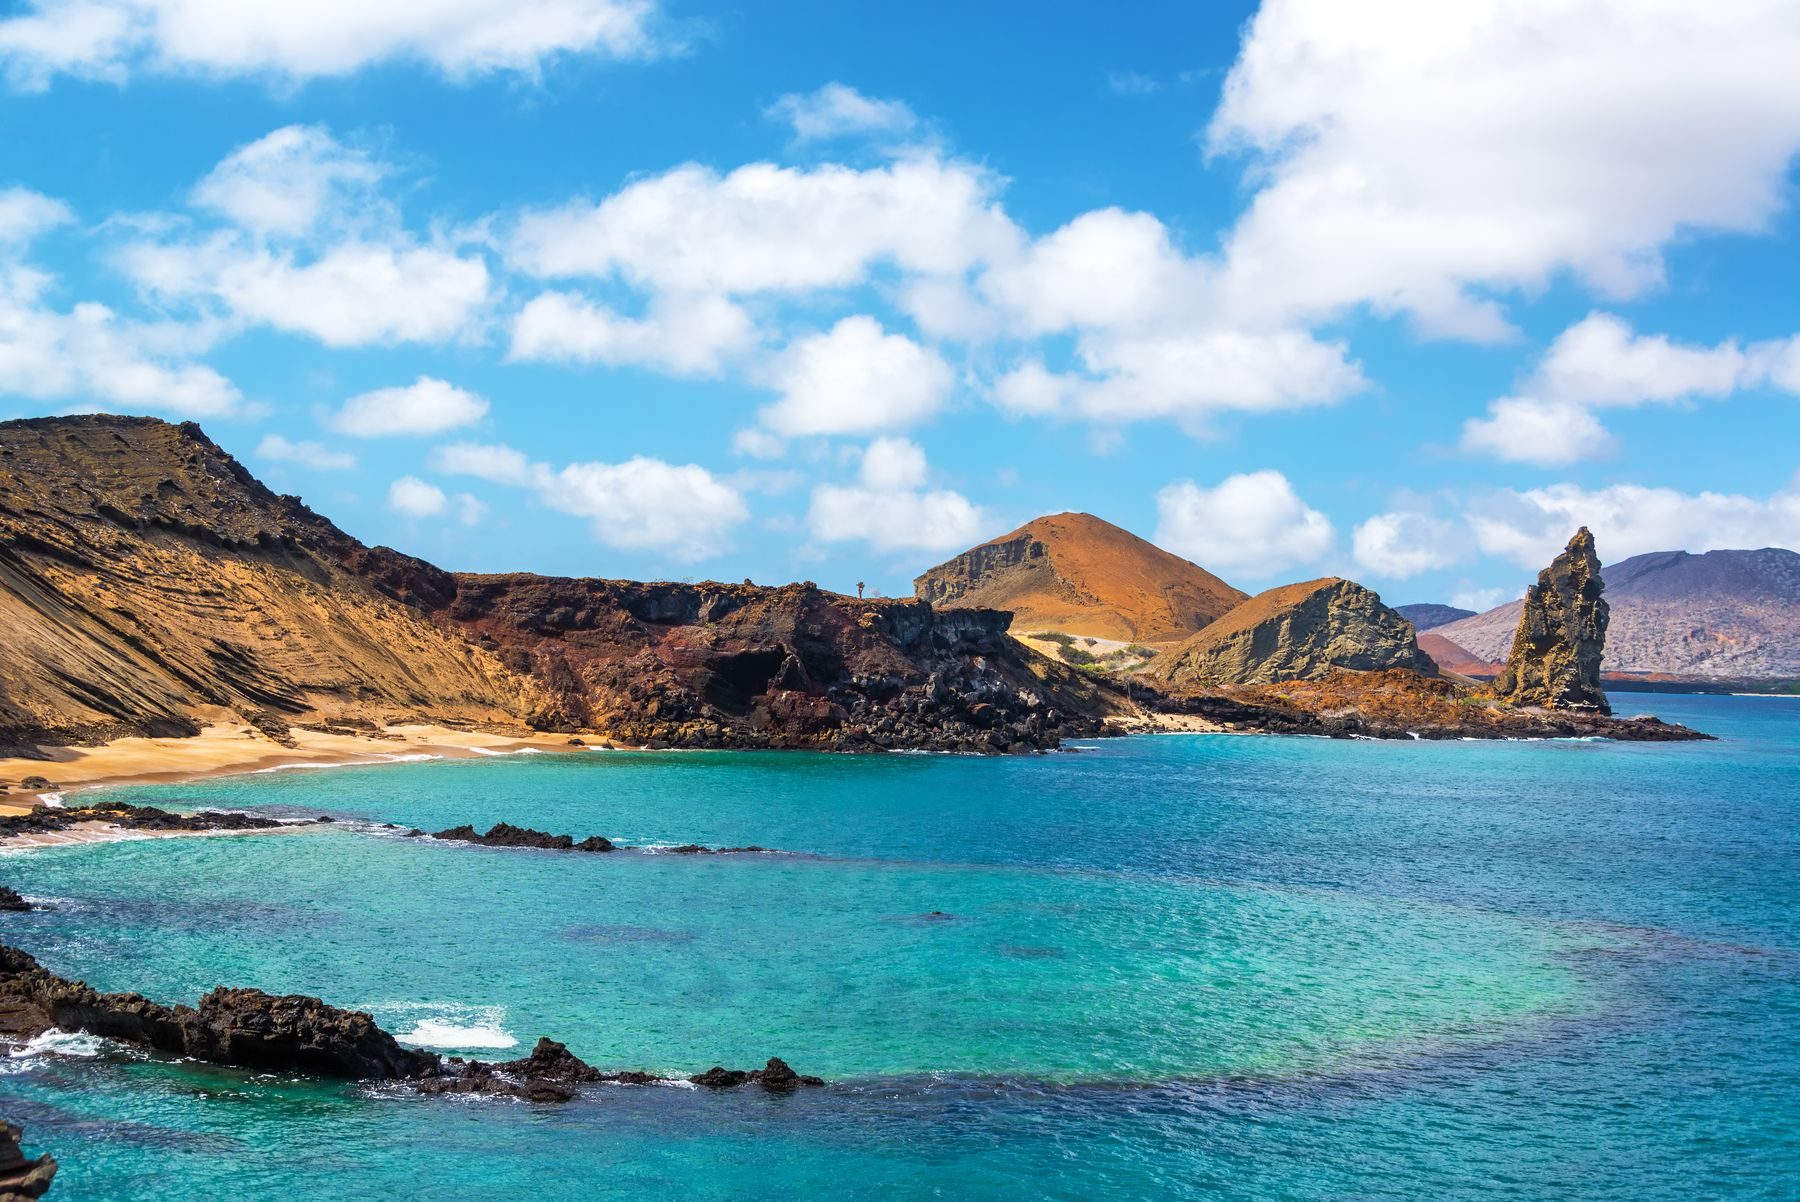 The Galapagos Islands, an ecotourism destination, showing its blue waters and coastline